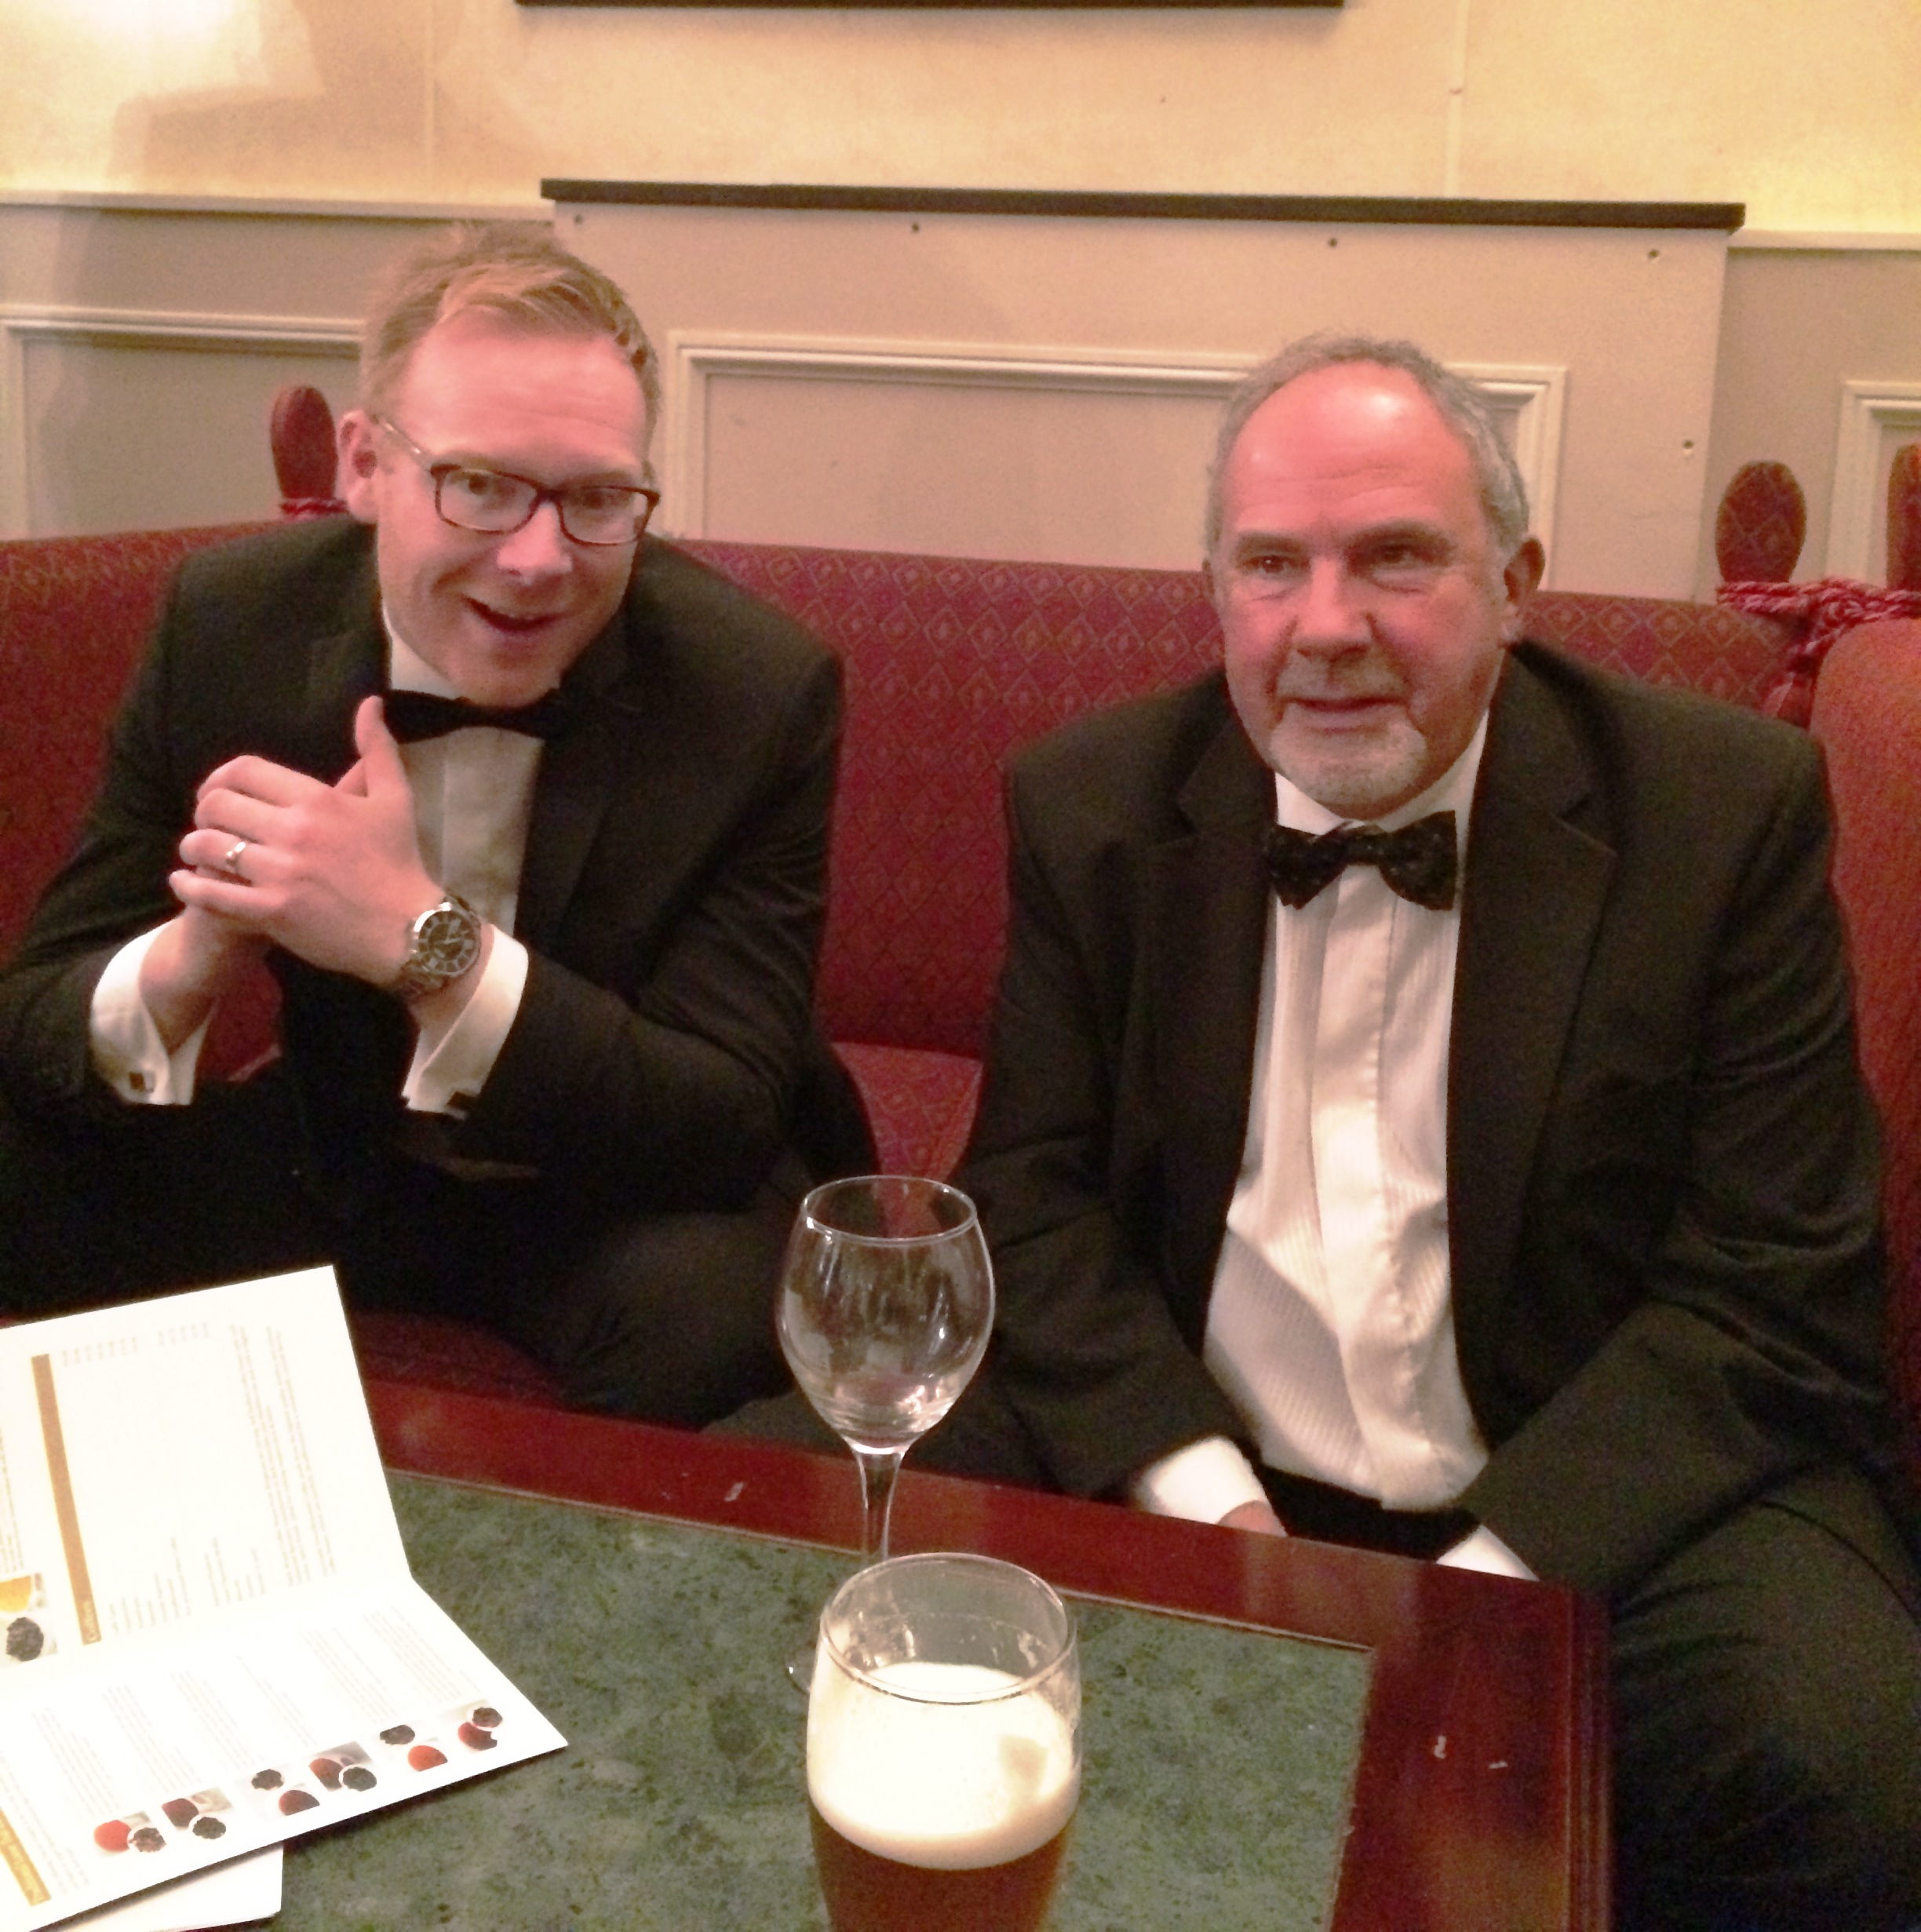 Gareth Jones of Bulmer & Lumb's Sales Team catches up with former colleague David Lister.